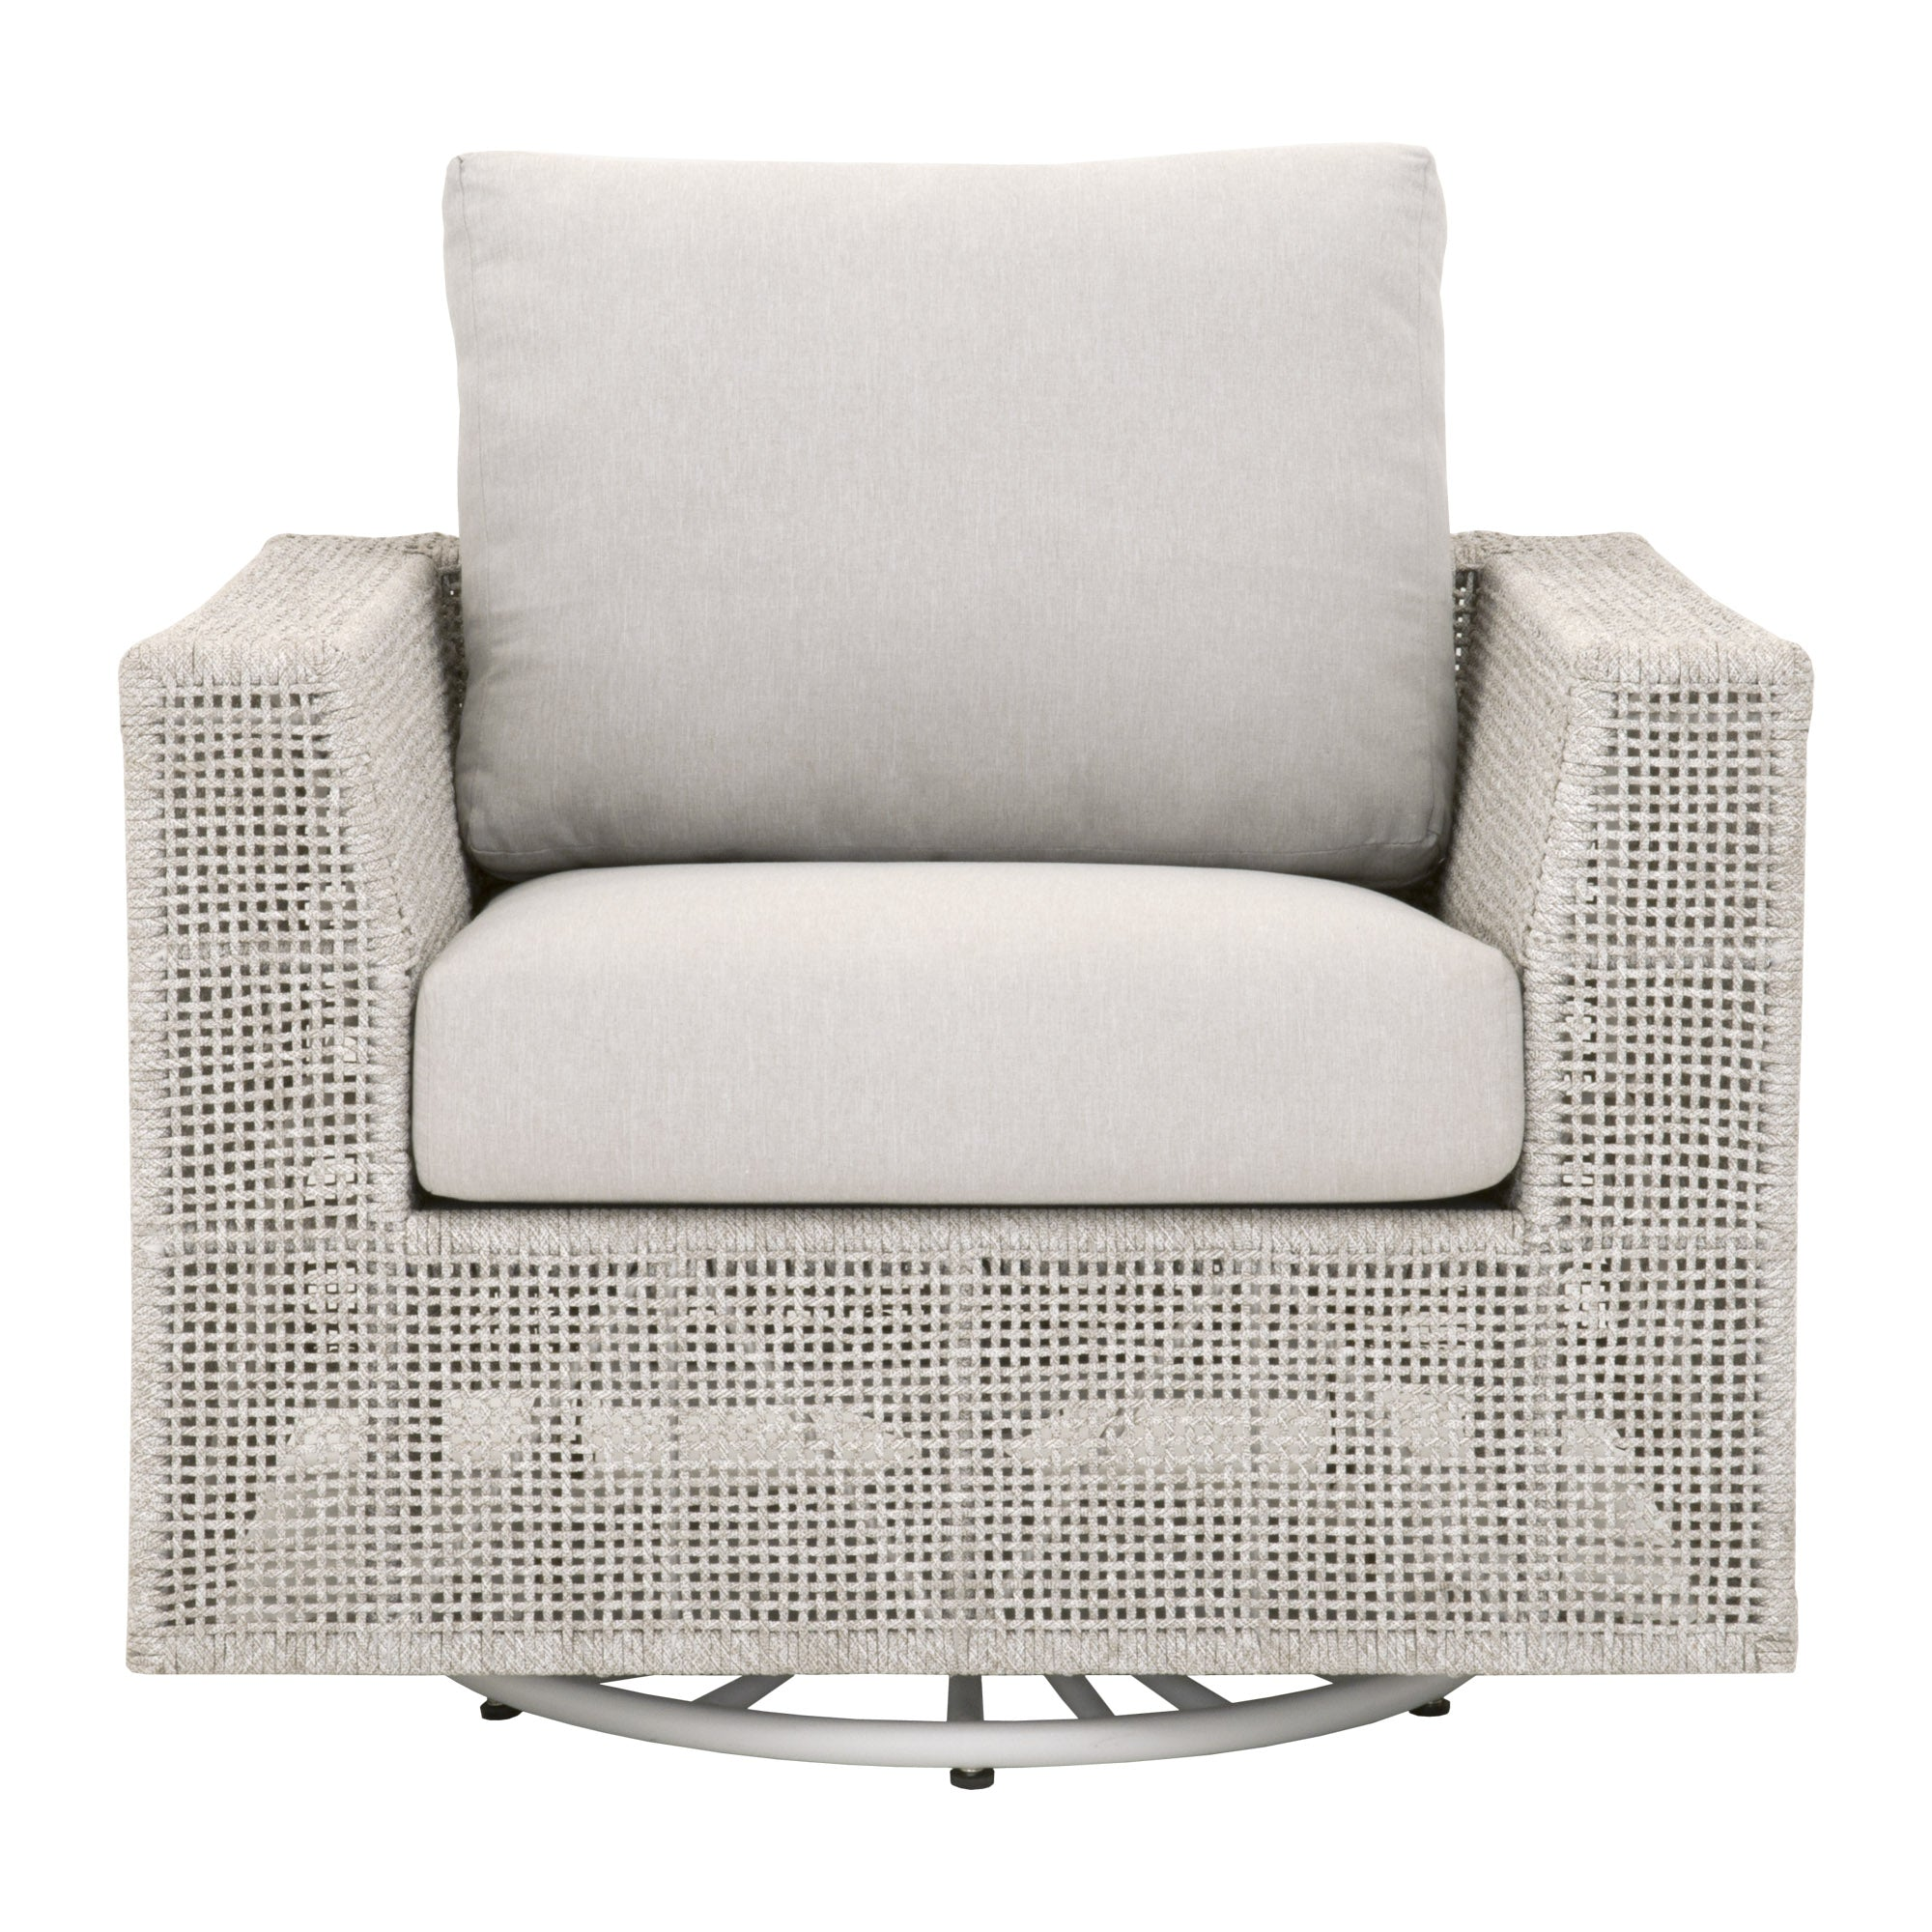 Essentials for Living-Tropez Outdoor Swivel Sofa Chair-Outdoor Lounge Chairs-MODTEMPO